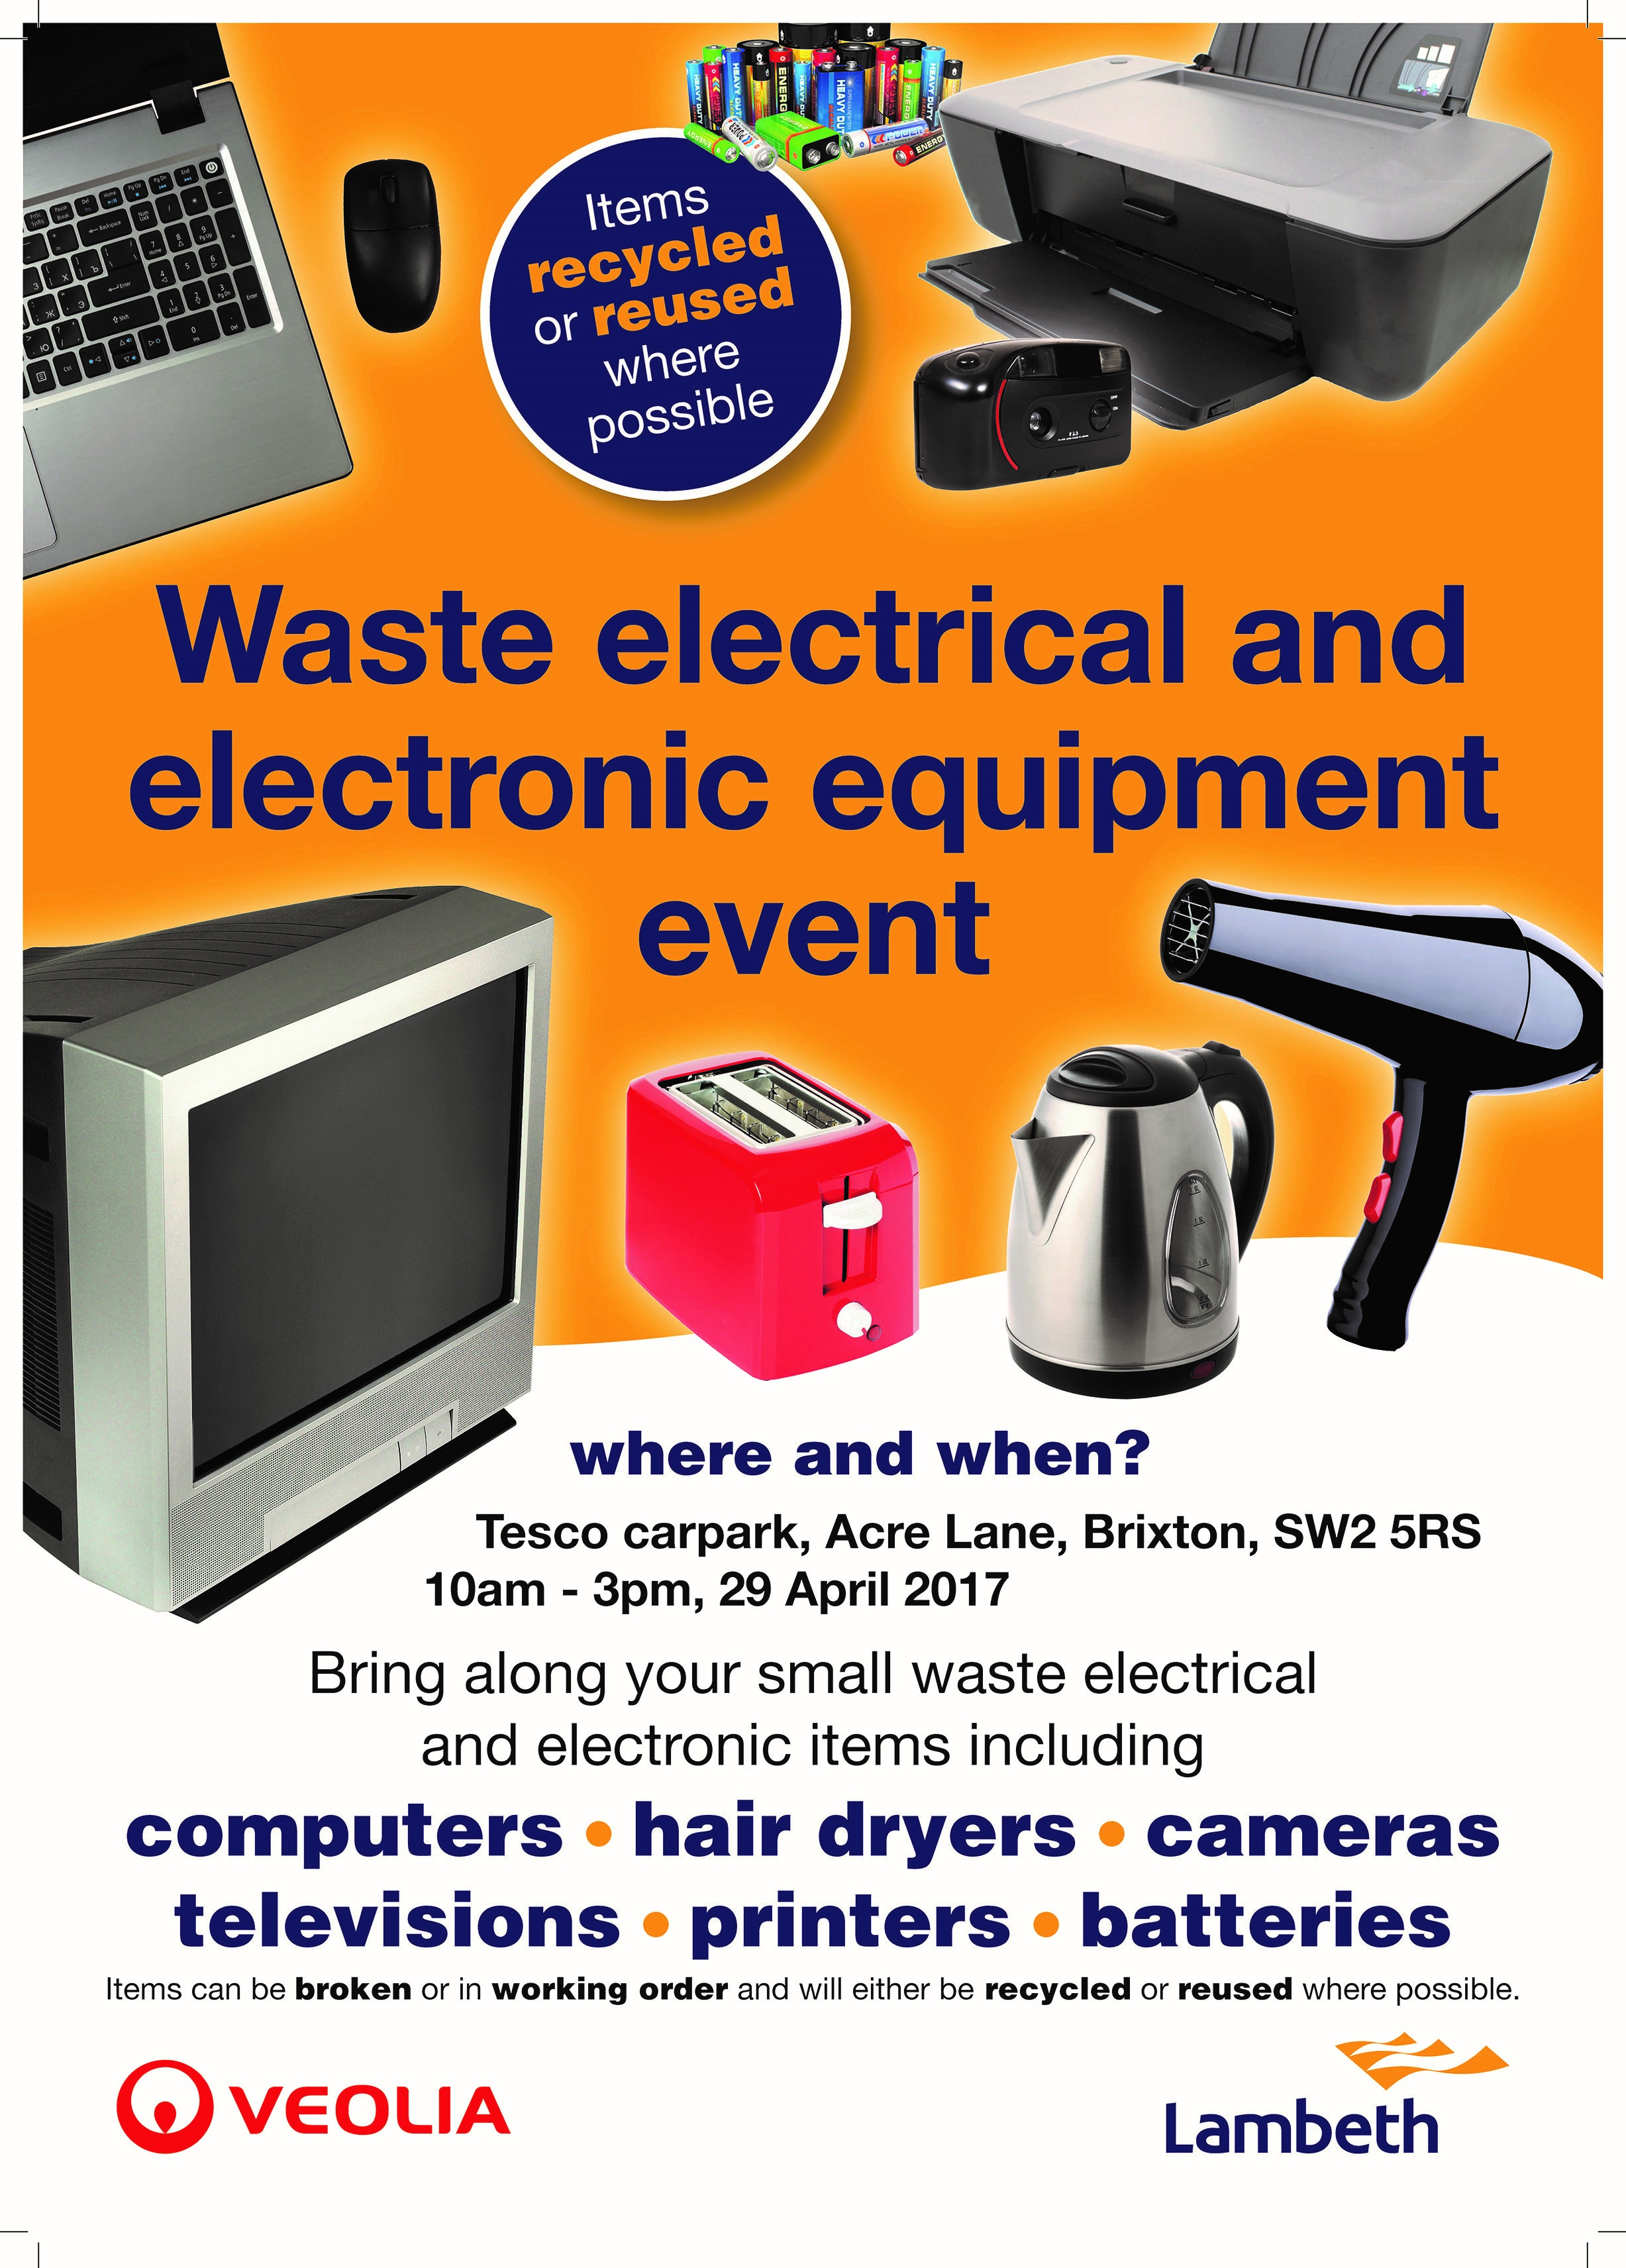 waste electrical and electronic equipment event 10-3 29 April Tesco Acre Lane